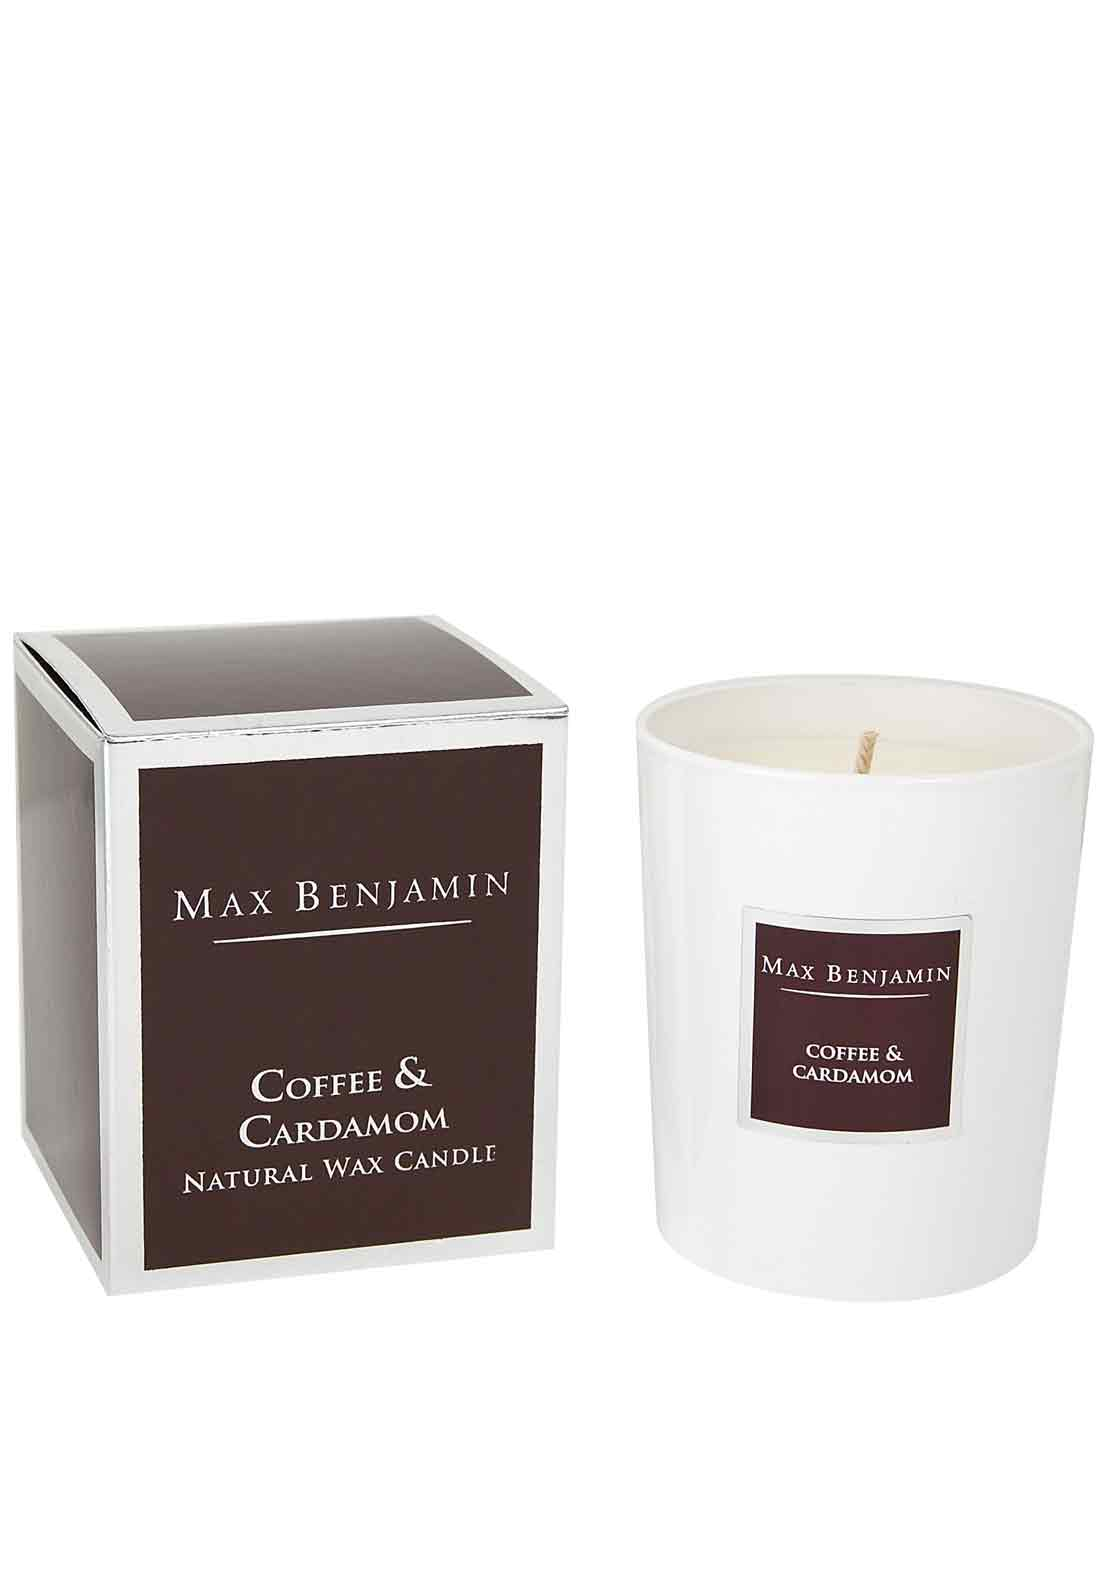 Max Benjamin Coffee & Cardamom Scented Candle, 190g